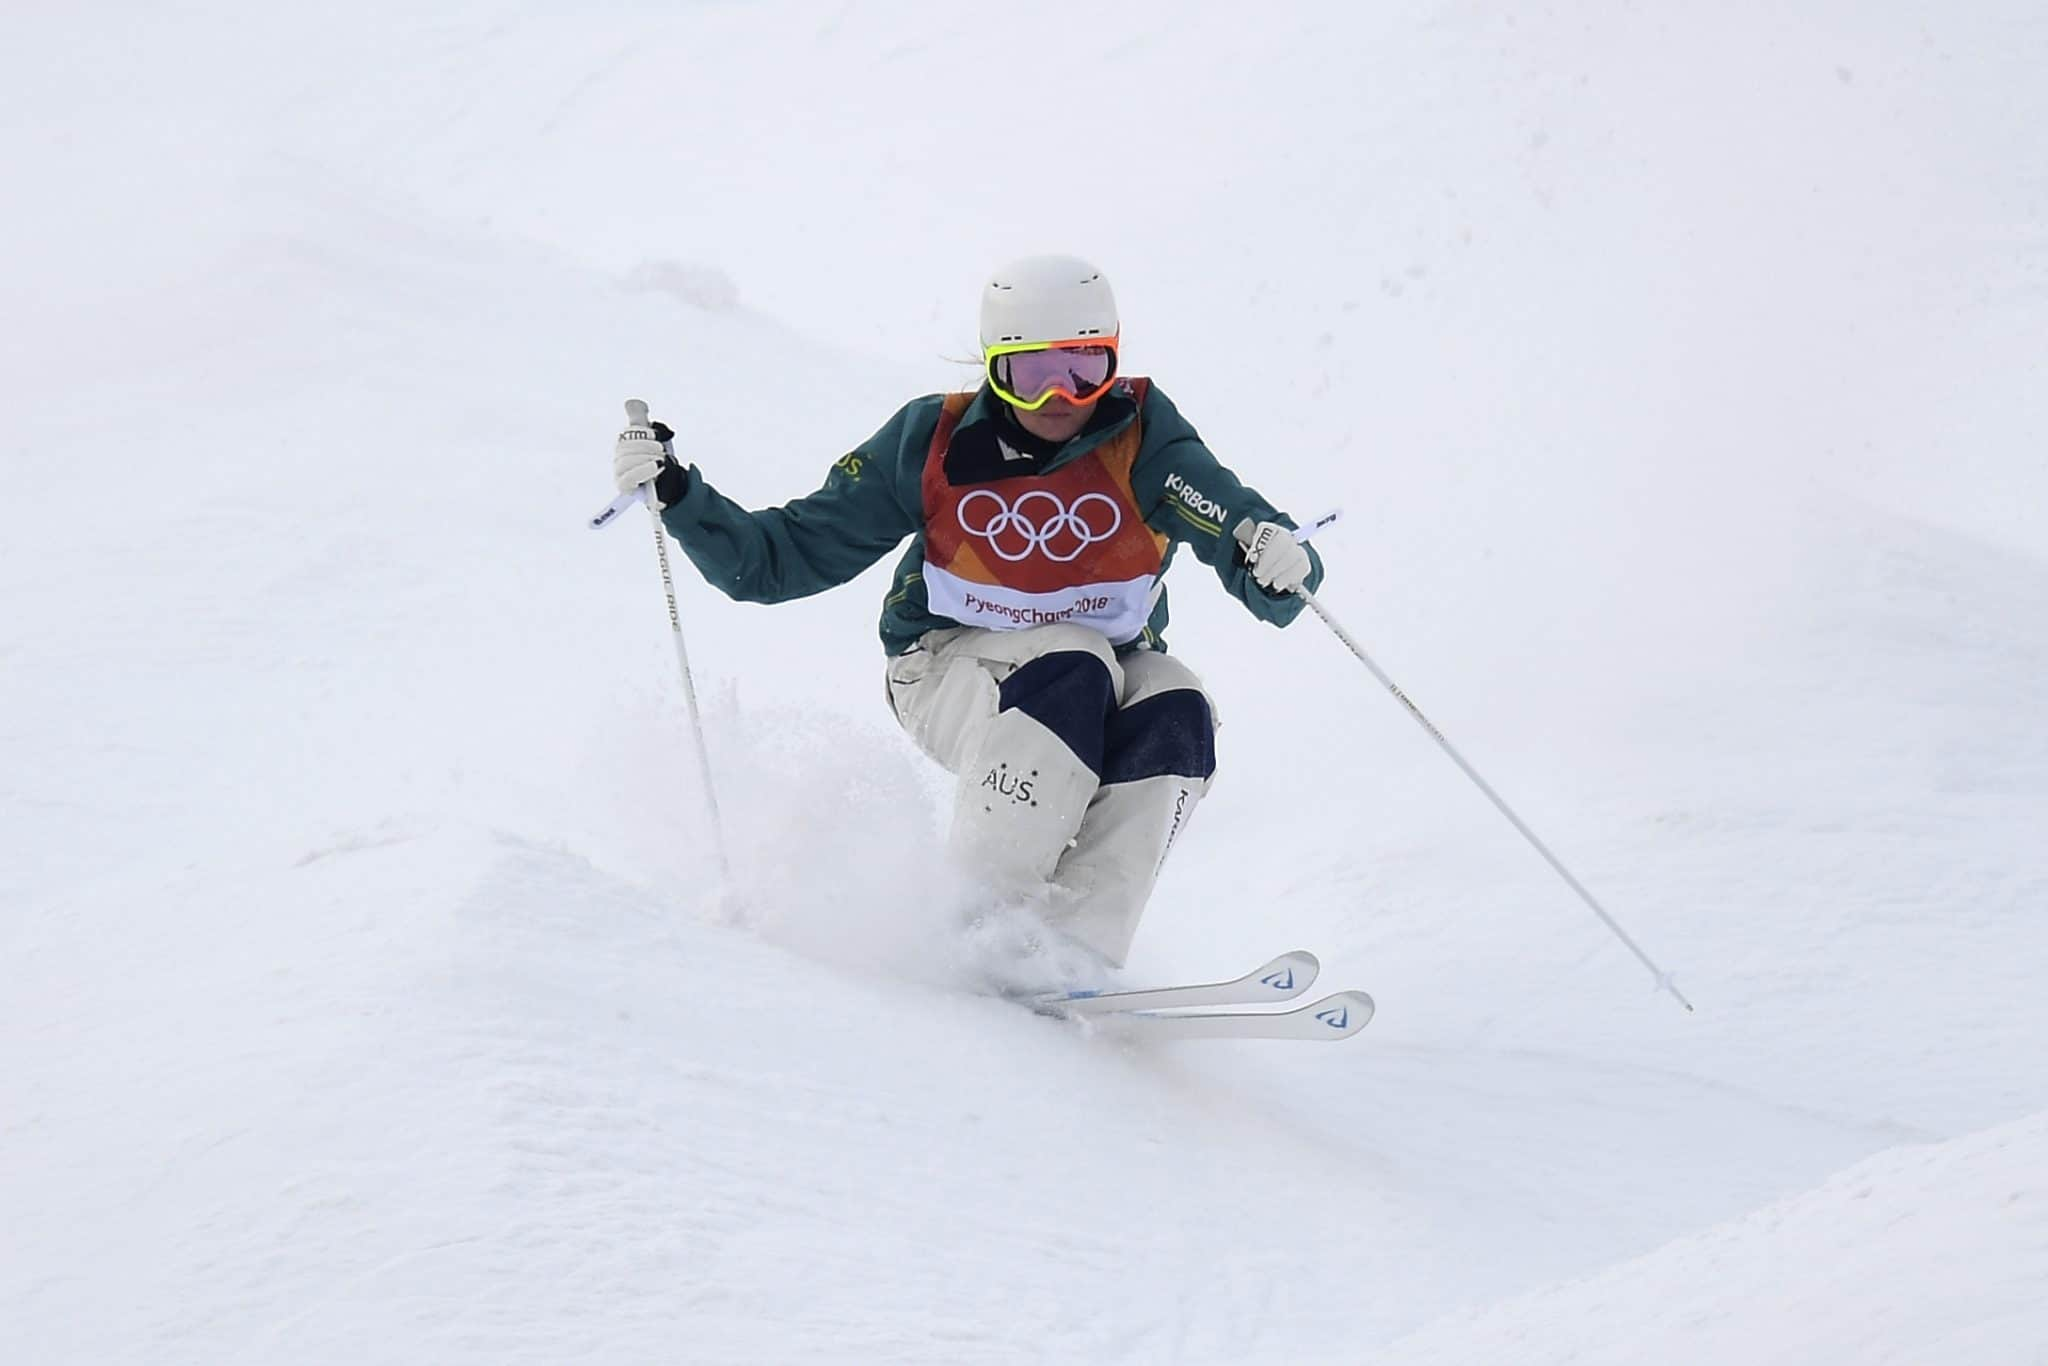 Britteny Cox of Australia competes in the Moguls Qualifying round during the PyeongChang 2018 Winter Olympic Games, at Phoenix Snow Park in PyeongChang, South Korea, Friday, February 9, 2018. Image:: AAP Image/Dan Himbrechts